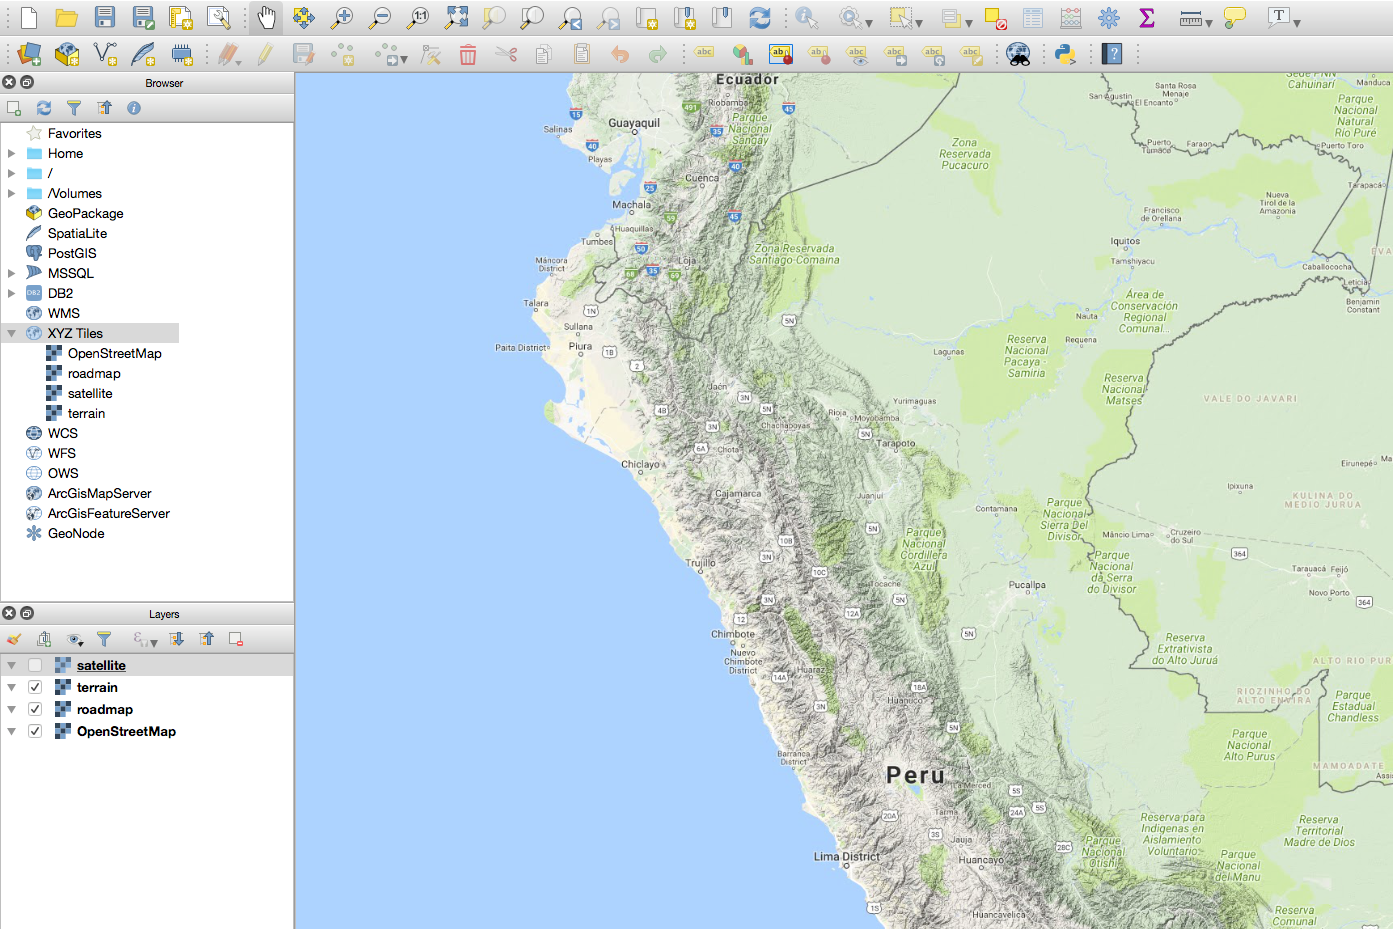 How to add a Google Map/Terrain/Satellite Layer in QGIS 3 ... Gooogle Map on online maps, google mars, road map usa states maps, aerial maps, gppgle maps, waze maps, route planning software, gogole maps, iphone maps, googie maps, google voice, google sky, goolge maps, msn maps, ipad maps, stanford university maps, google search, google docs, google translate, aeronautical maps, google chrome, microsoft maps, google map maker, googlr maps, topographic maps, google moon, bing maps, web mapping, search maps, yahoo! maps, android maps, satellite map images with missing or unclear data, amazon fire phone maps, google goggles,